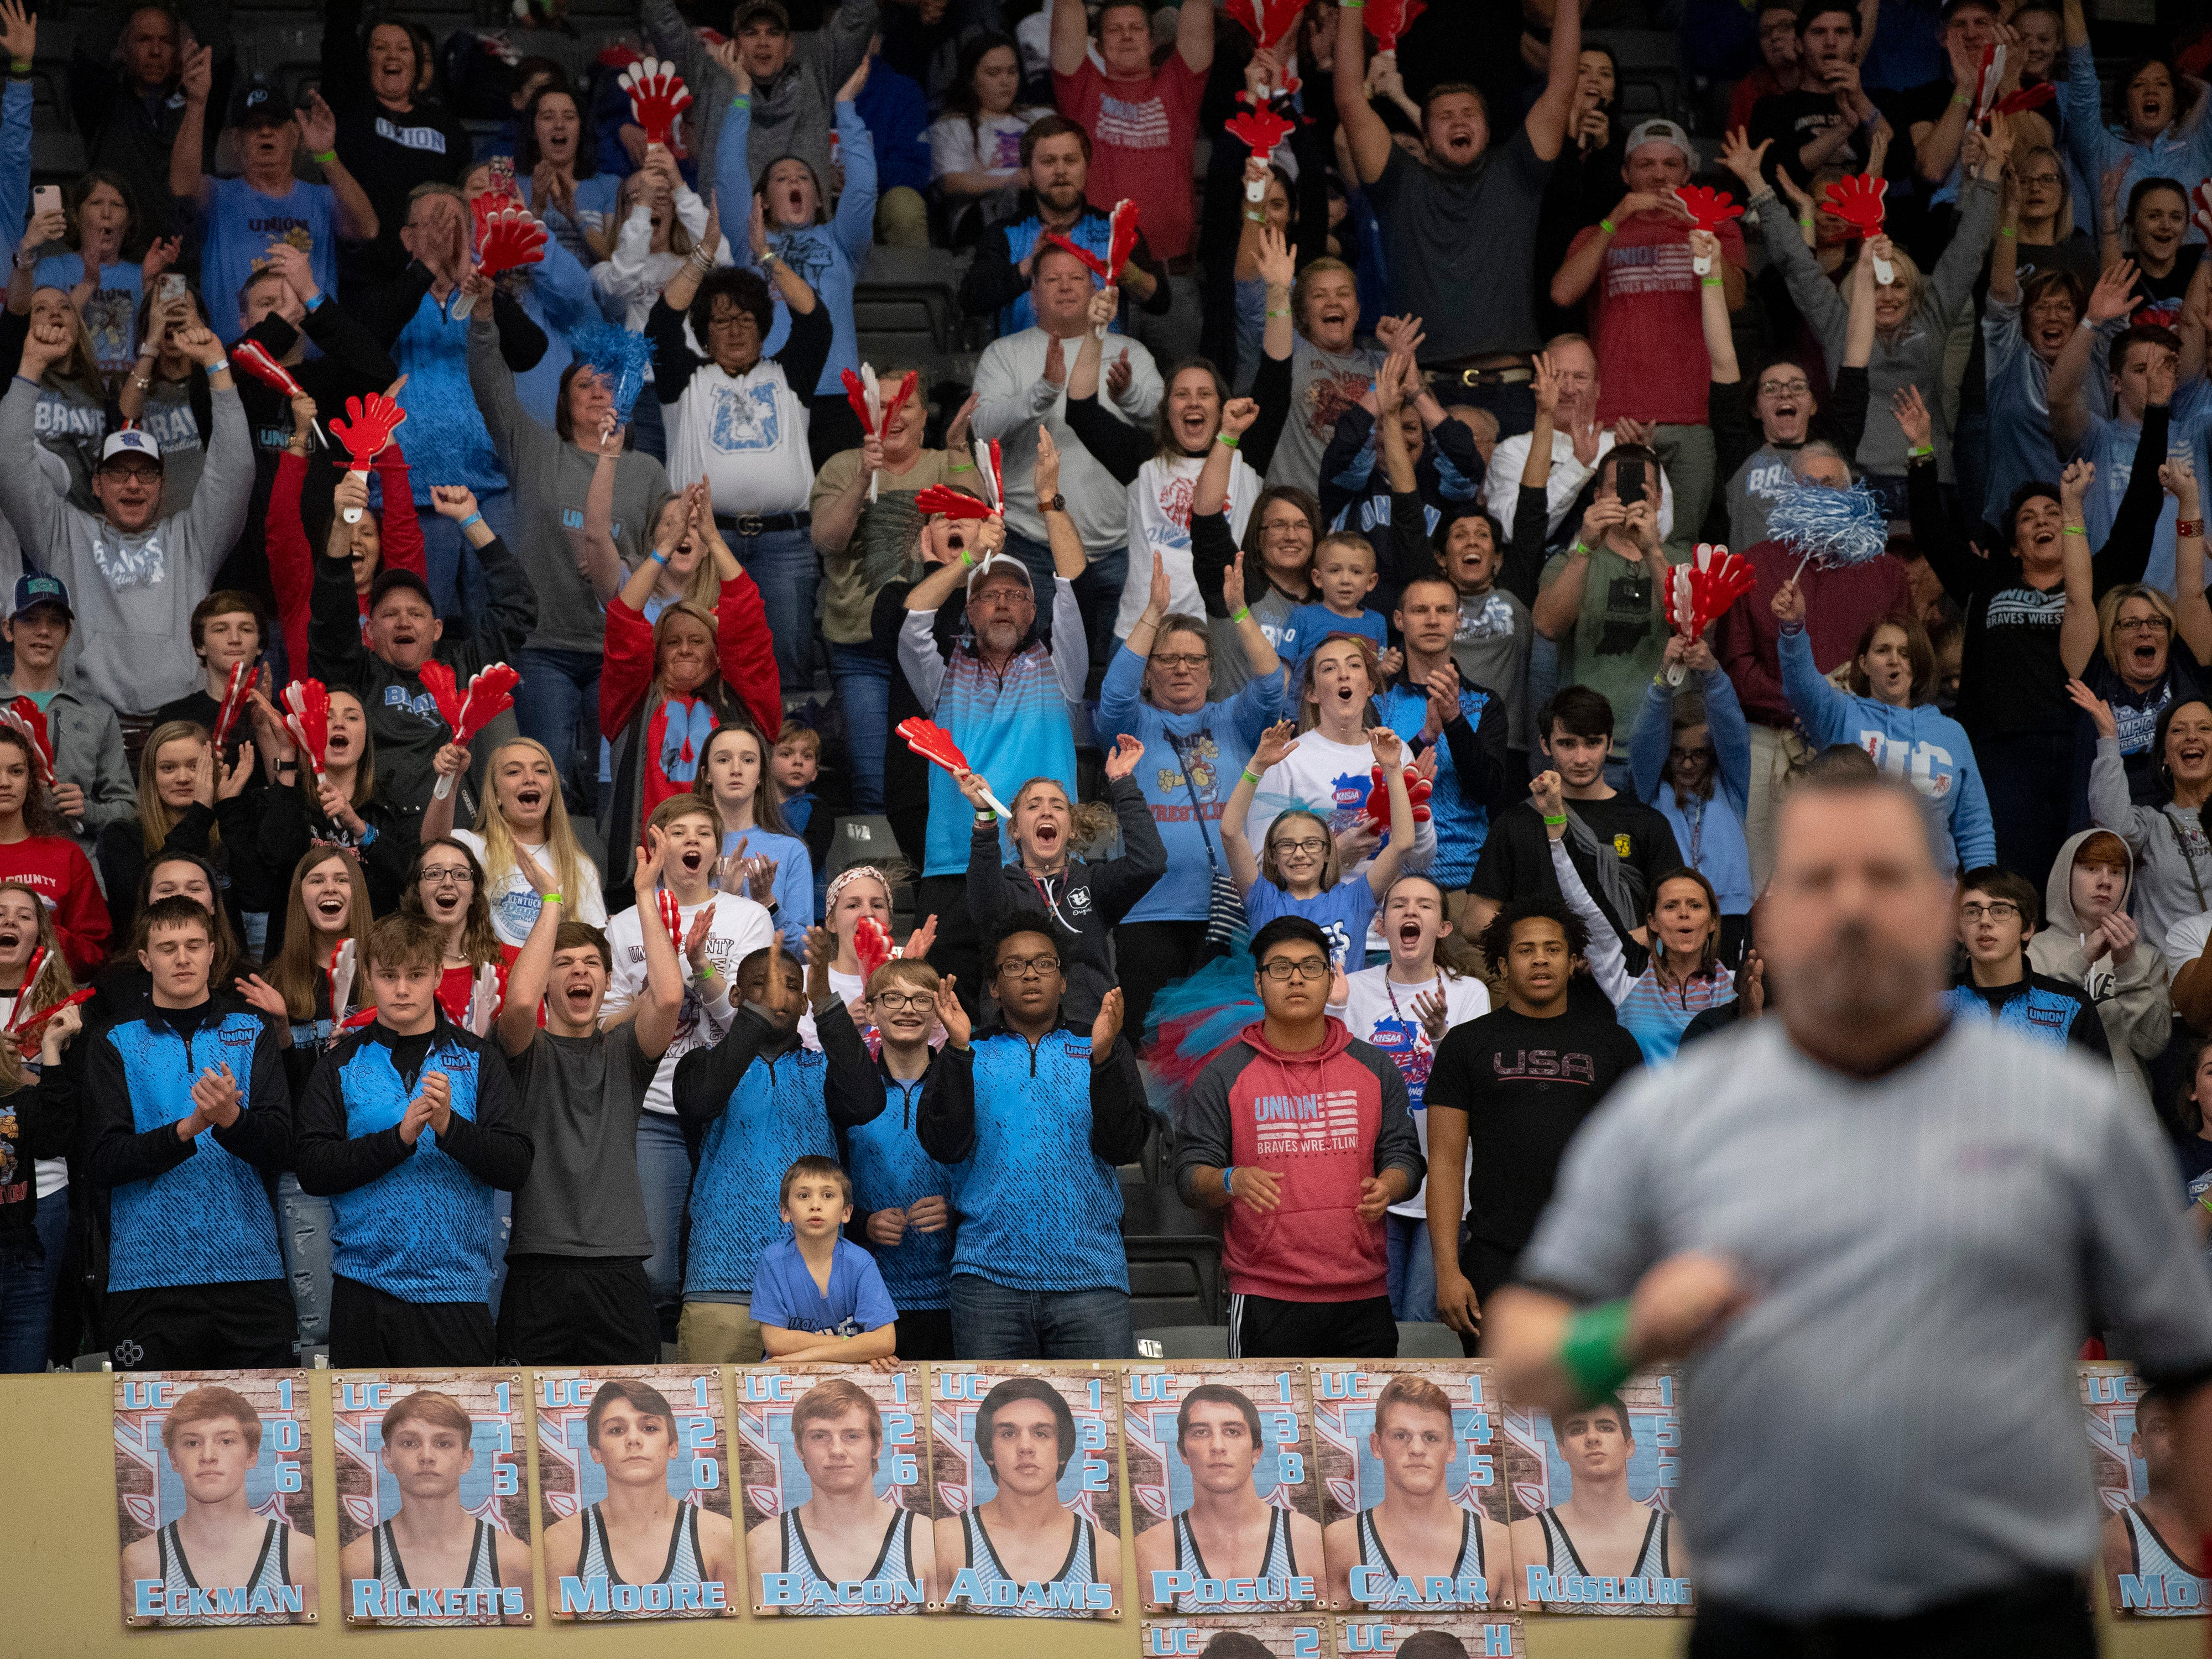 The Union County fans celebrate Mathias Ervin's 220-pound championship win at the KHSAA State Wrestling Championships at the Alltech Arena in Lexington, Ky., Saturday afternoon. Ervin defeated Christian County's Niko Bussell with a 3-1 decision for his second state championship.